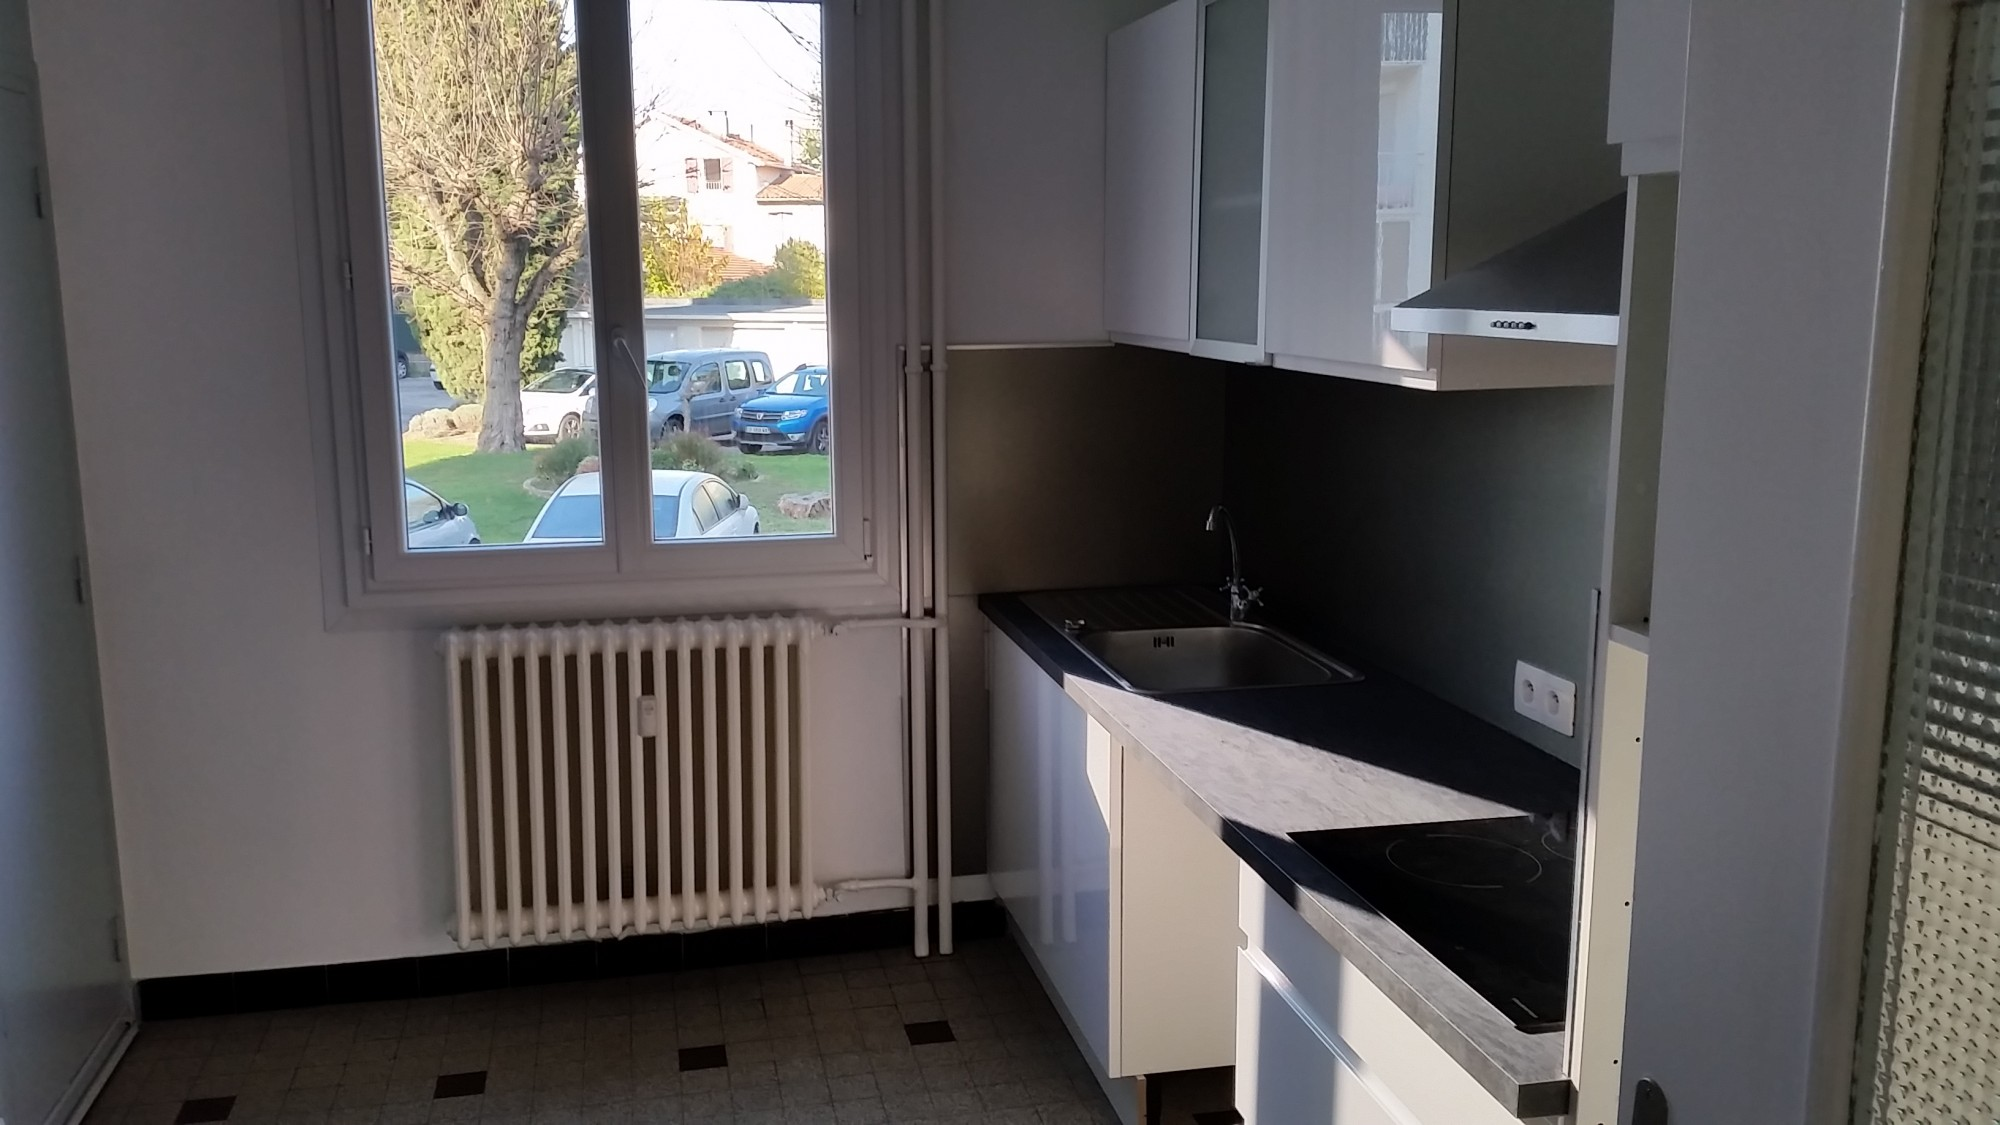 Appartement 2 chambres louer sur chateauvert valence avec garage location agence - Location appartement meuble valence ...